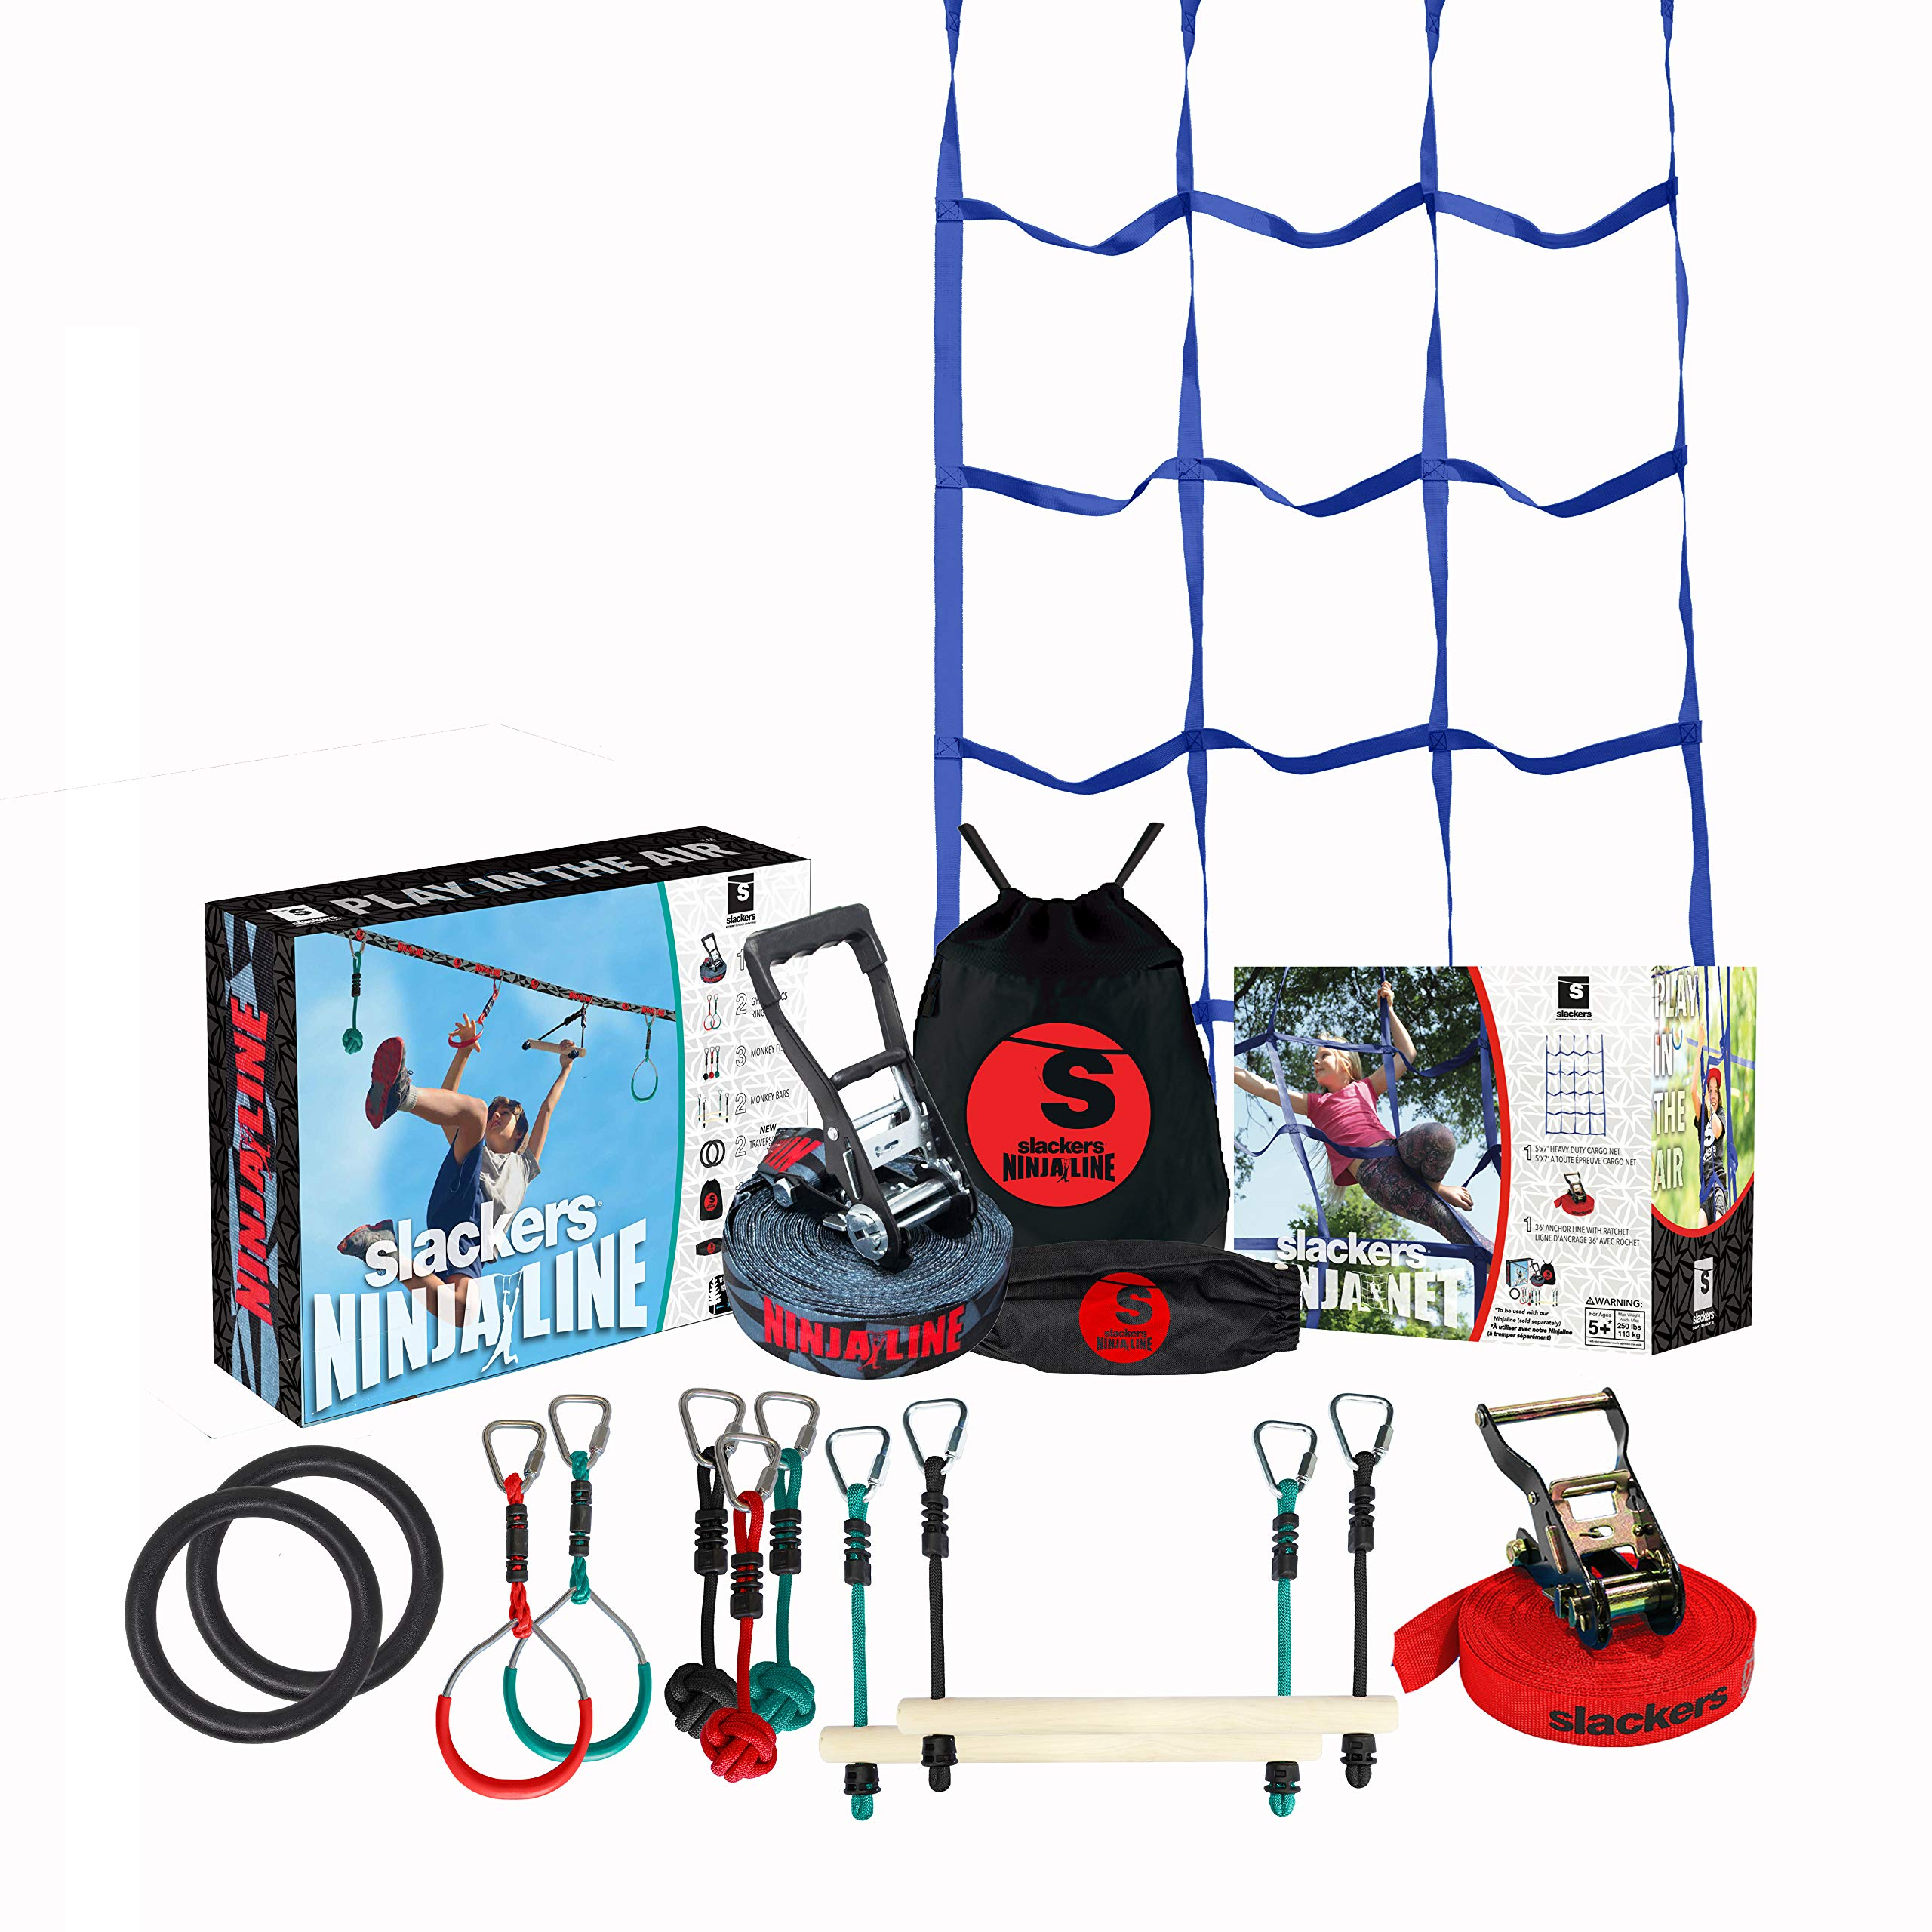 Slackers Ninja Climbing Line with Cargo Net (30' & 50' Varieties) | Ninjaline | Slackline Obstacle Course | Slackersline | Ninja Warrior Kit (50') by Slackers